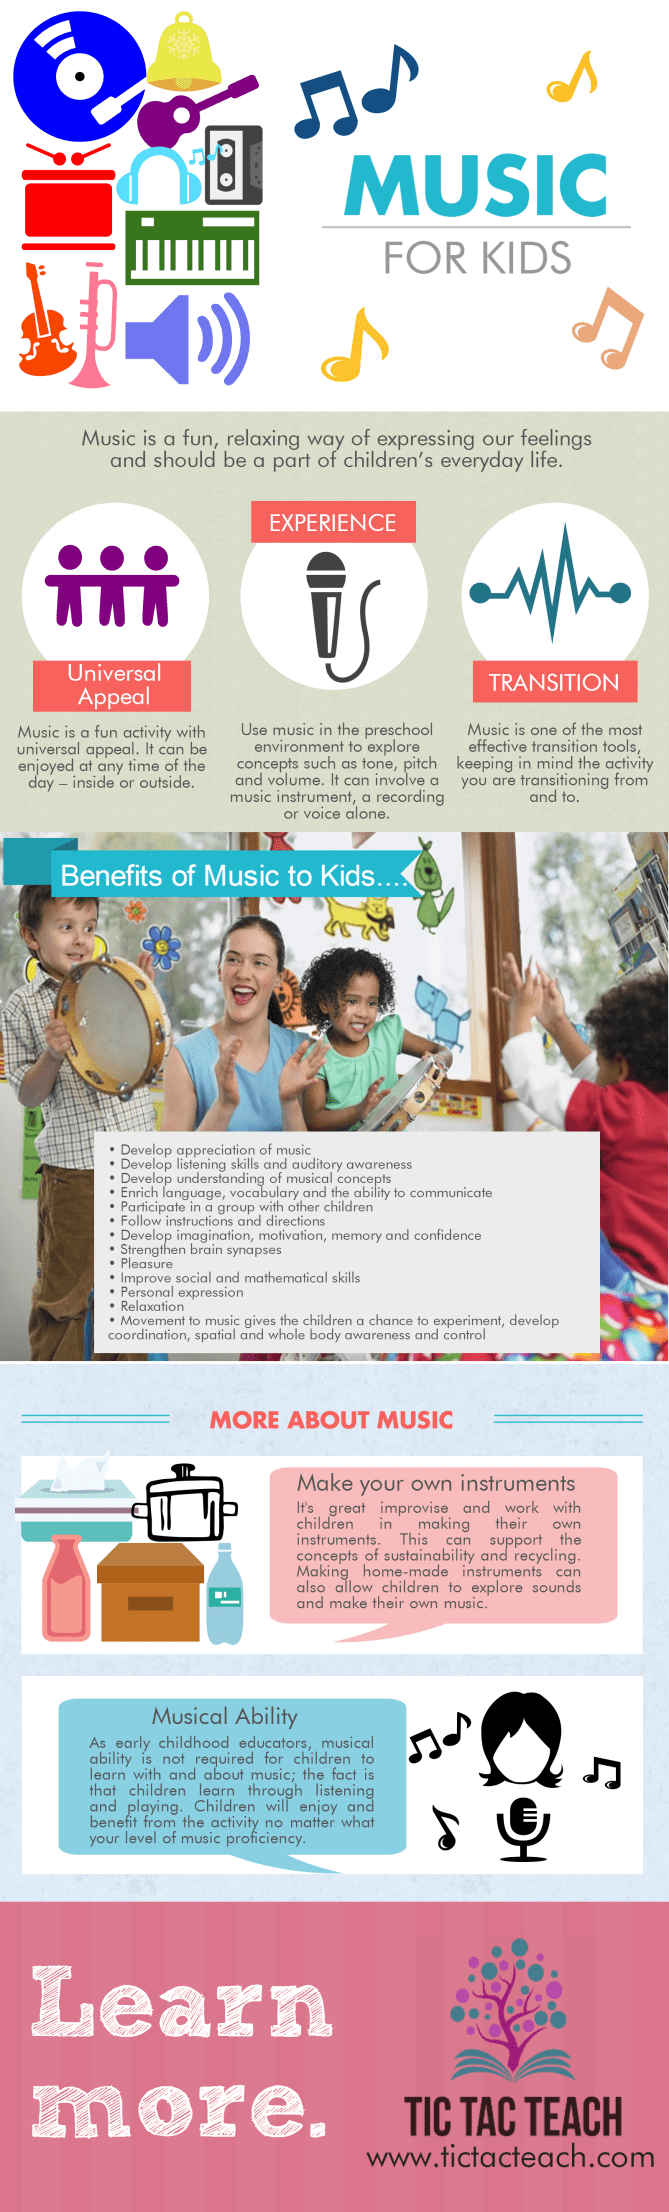 TicTacTeach Music for kids infographic